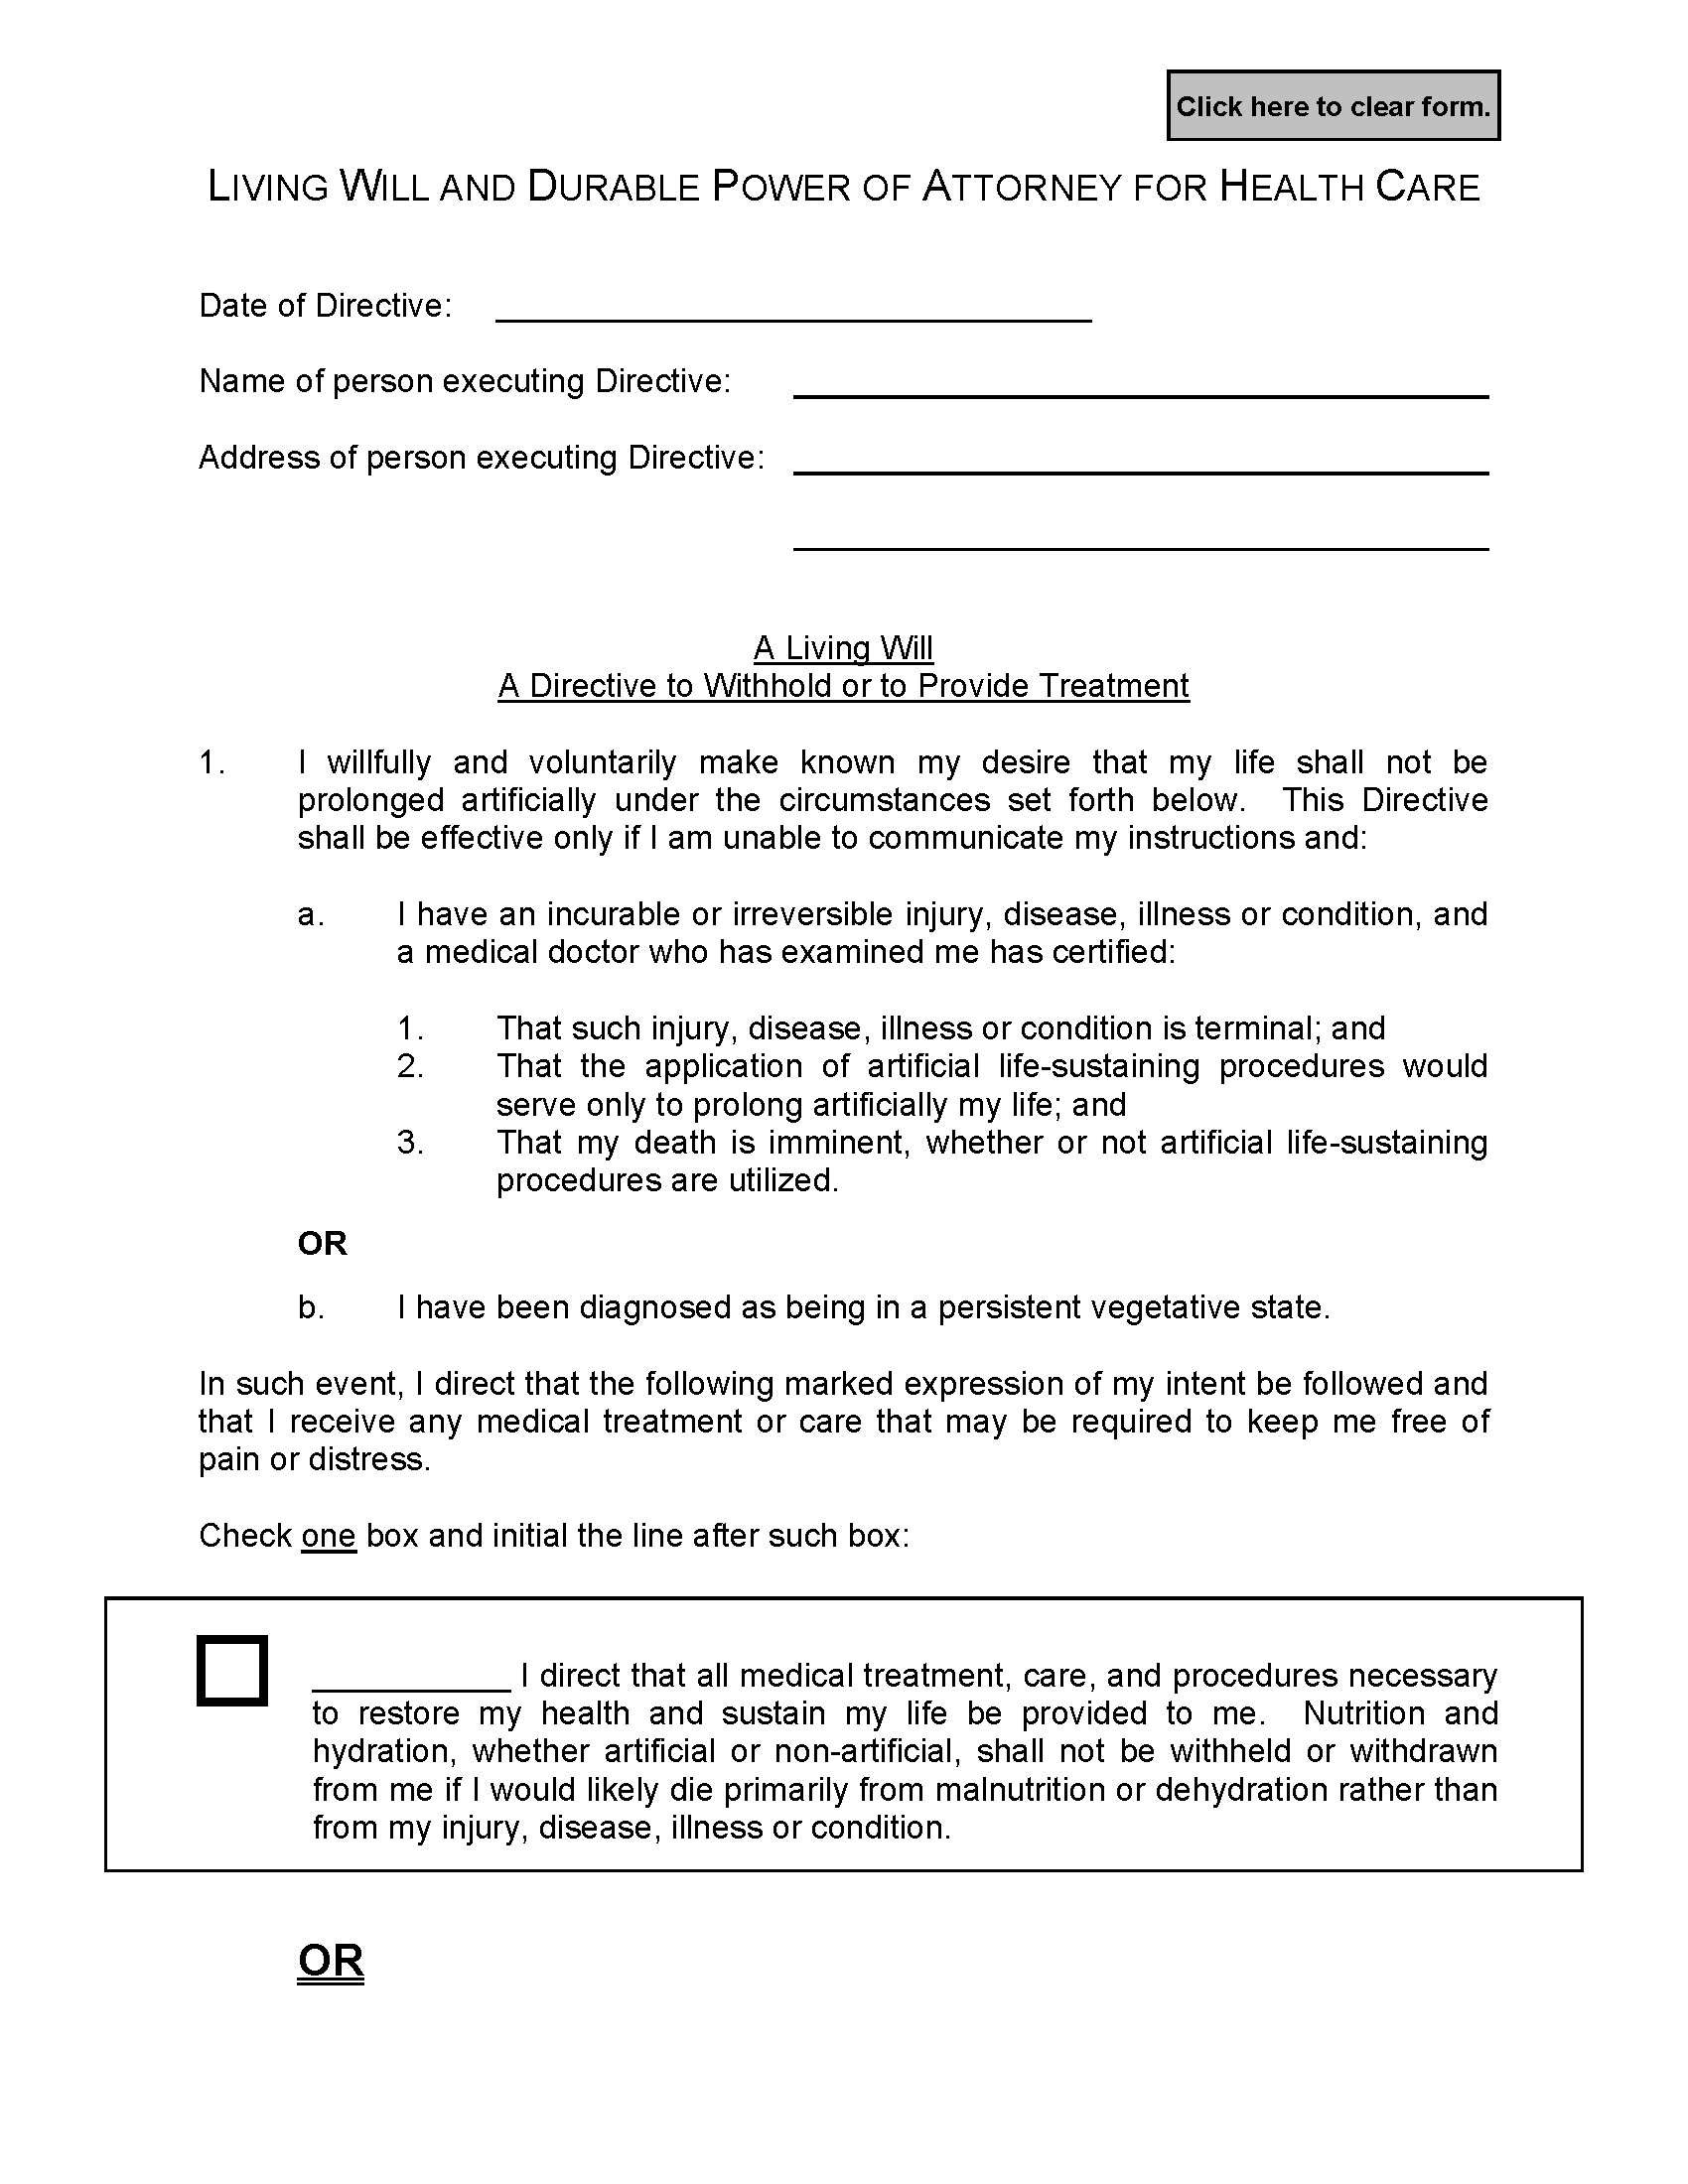 Idaho Living Will Fillable PDF Form